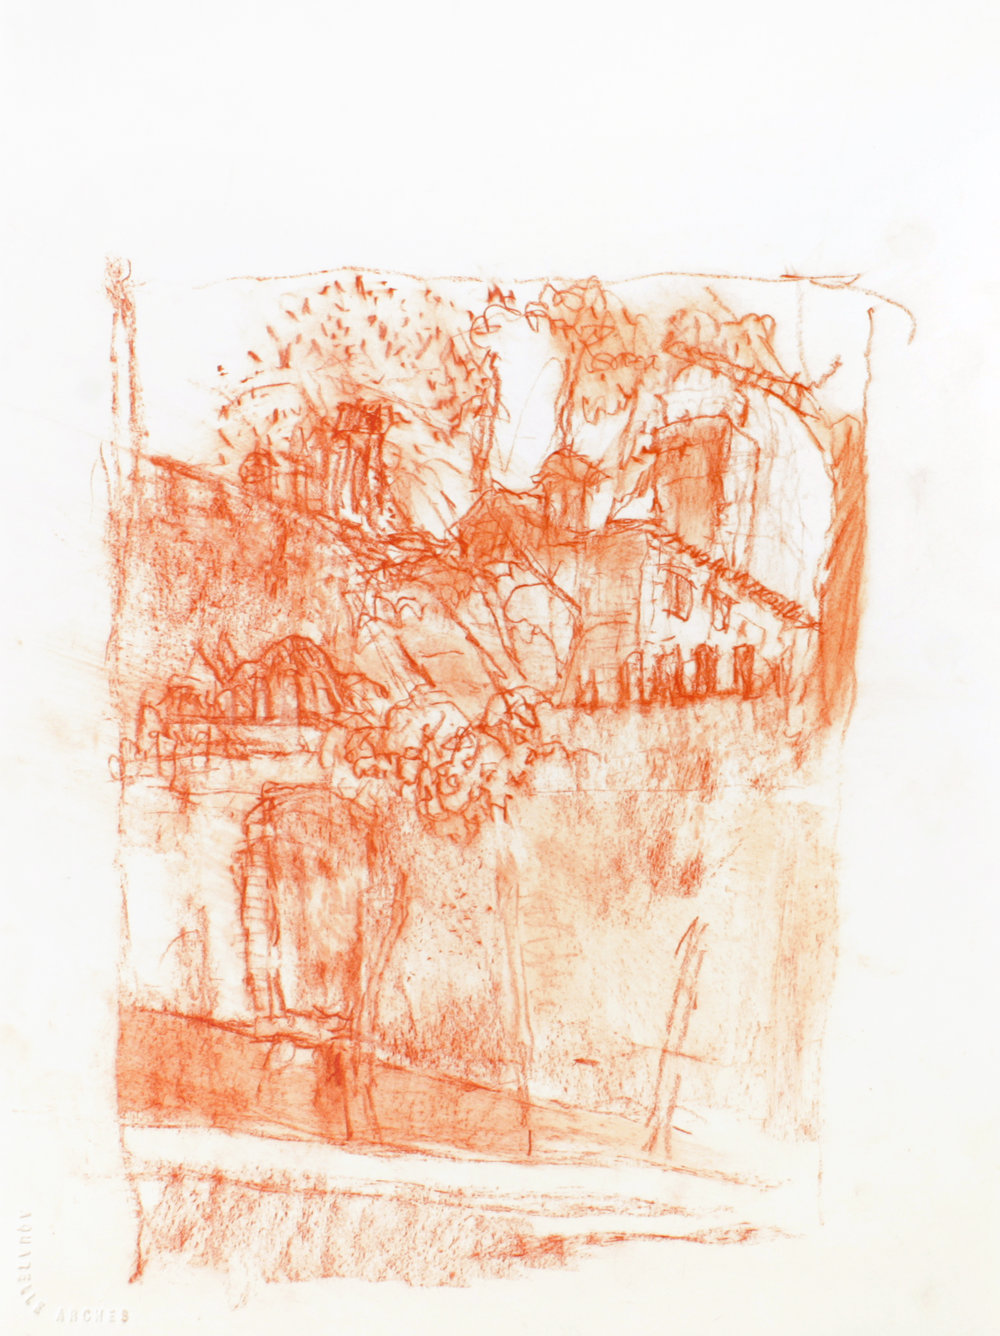 1999_Venice_Wall_and_Garden_red_conté_on_paper_15x11in_WPF067.jpg